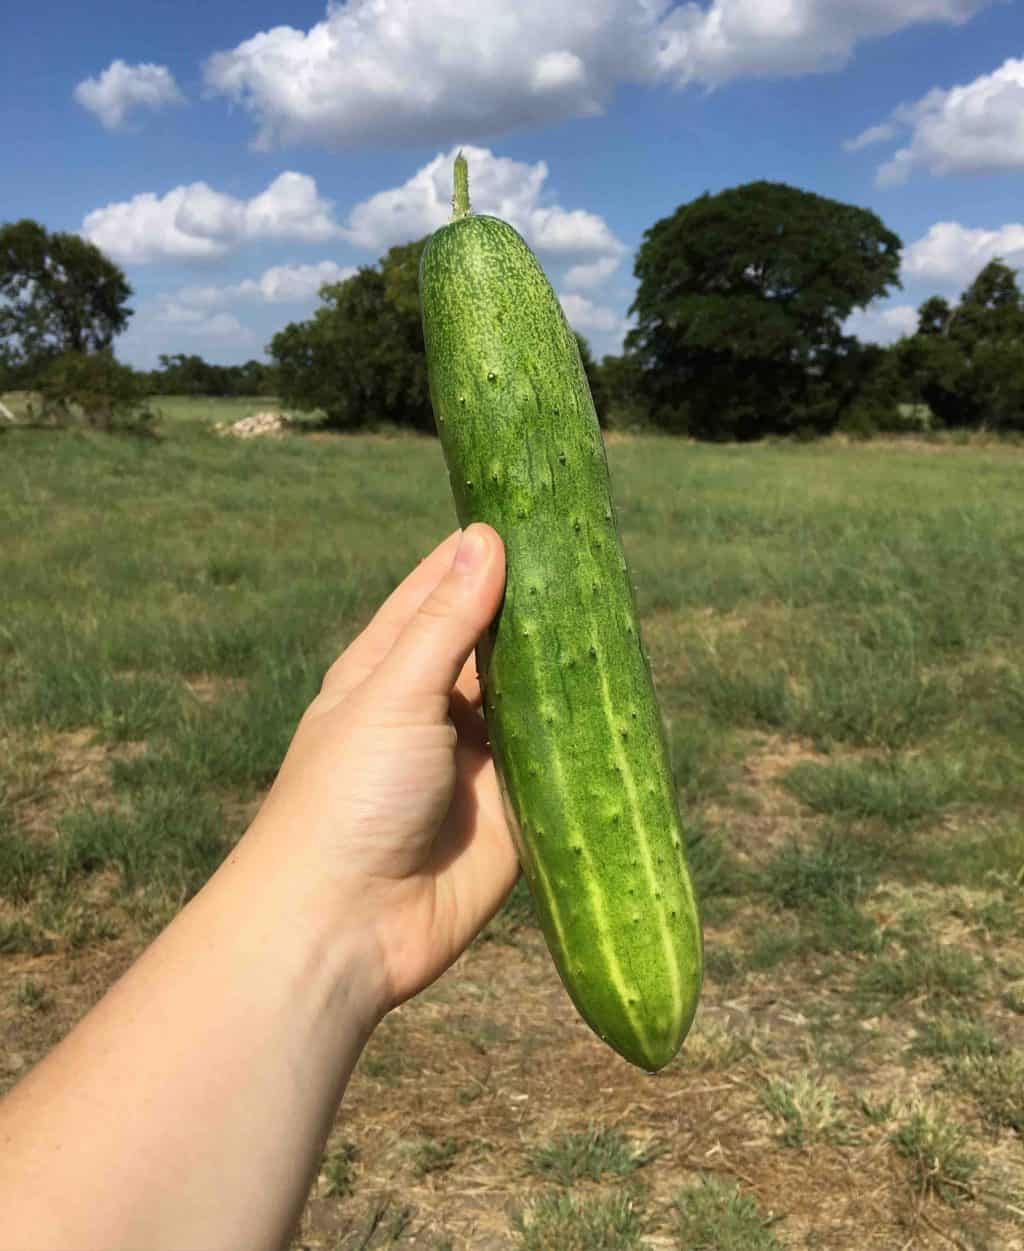 Homegrown Cucumber copy